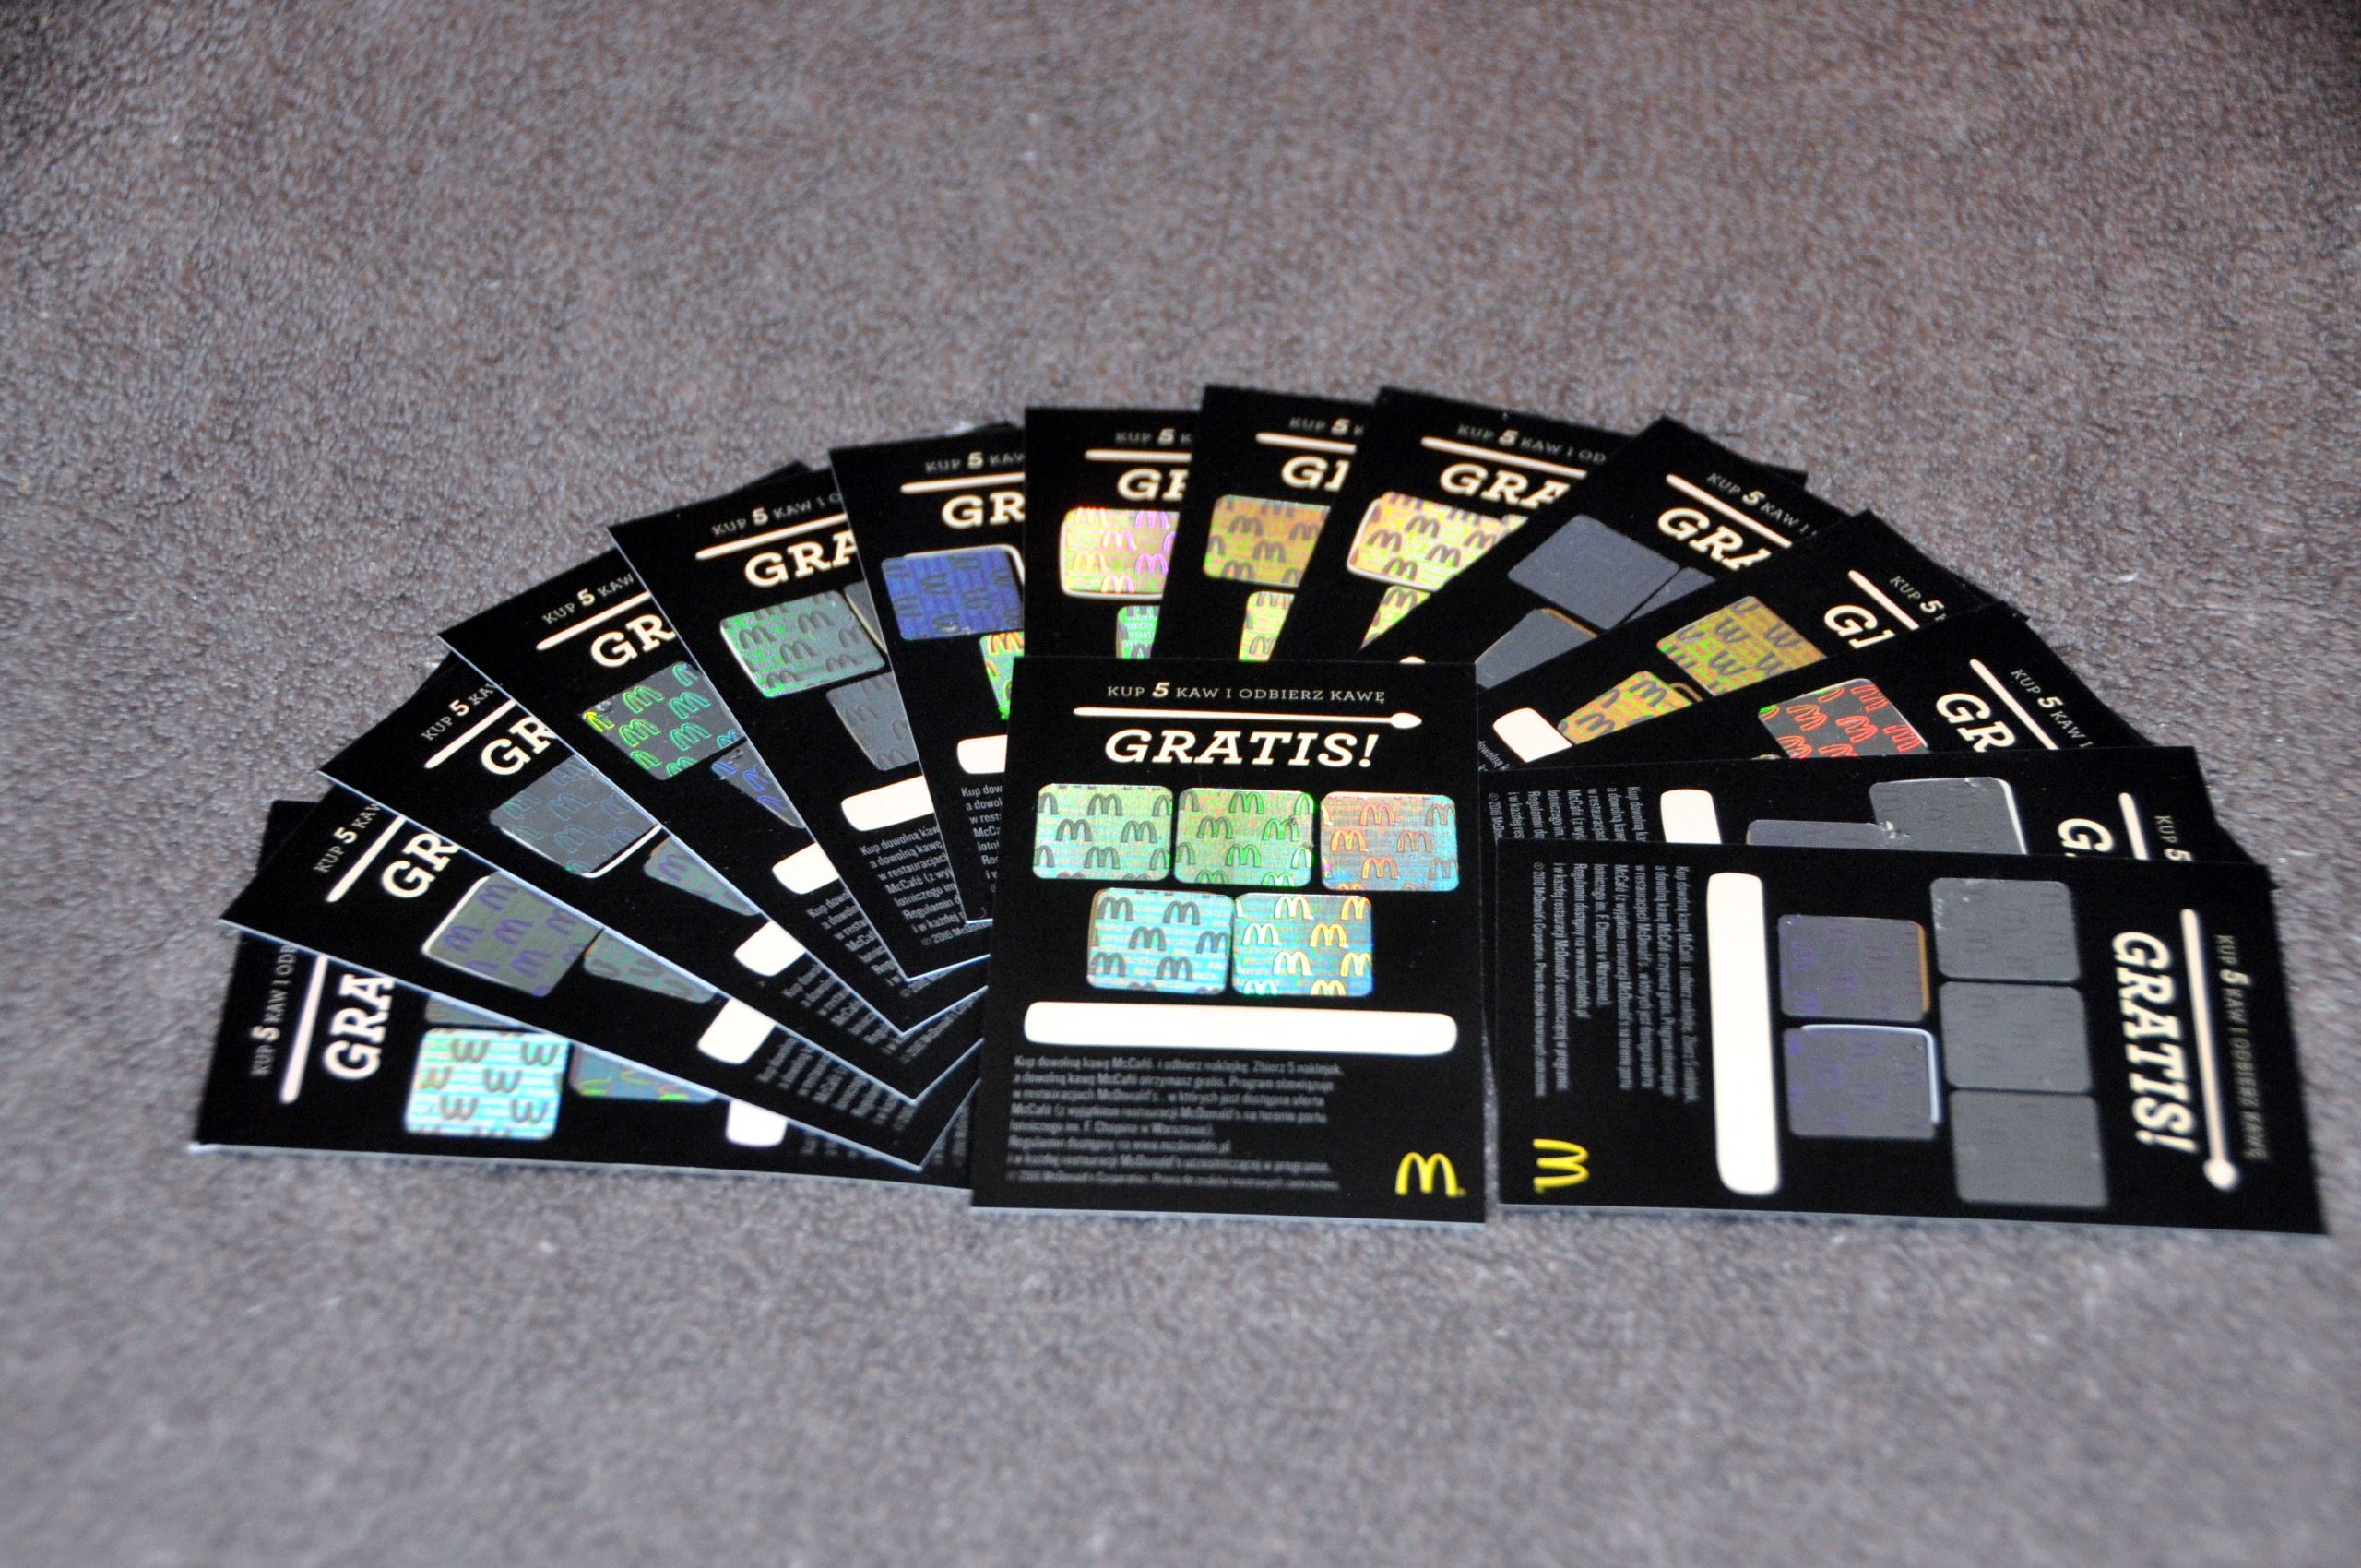 Item 15 coupons for coffee at McDonald's Holograms